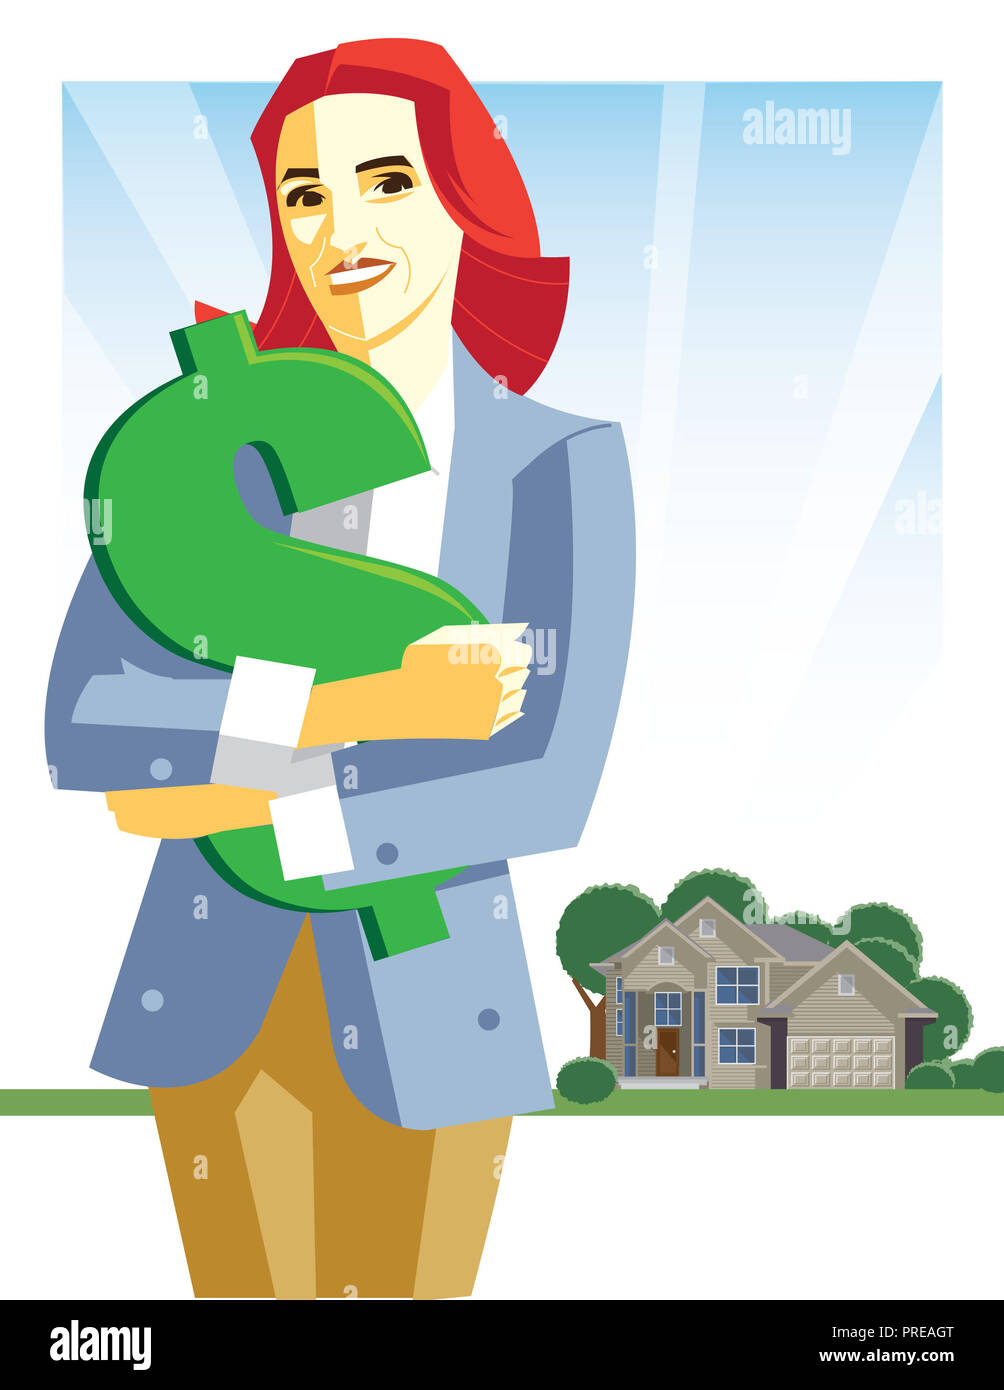 Portrait of woman holding dollar sign in front of house - Stock Image